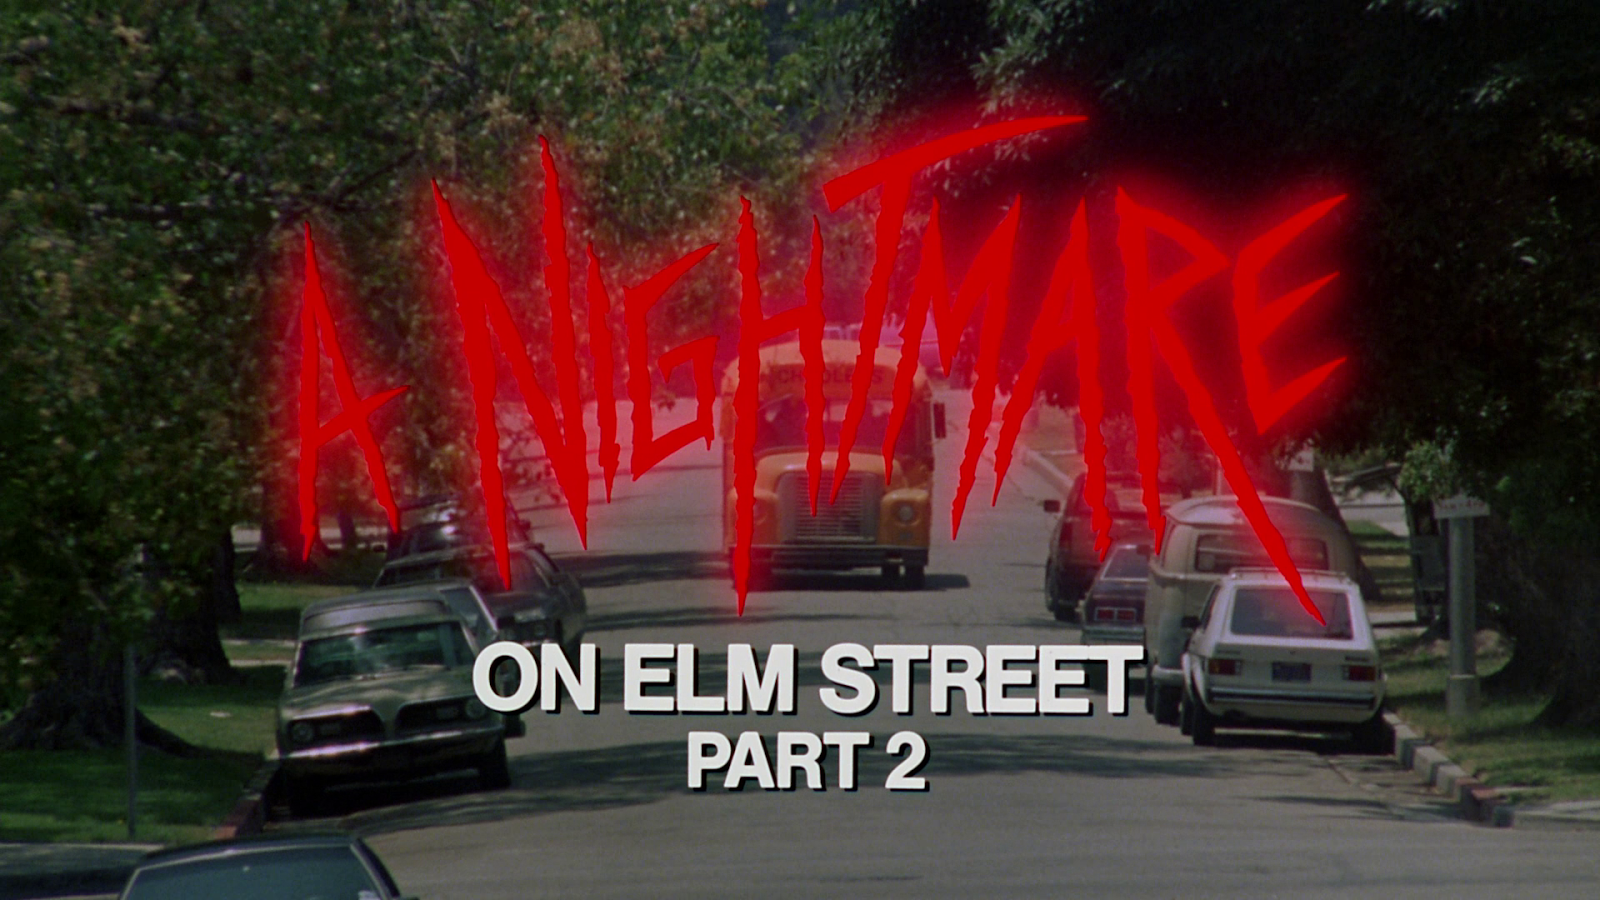 The title screen in Jack Sholder's A Nightmare on Elm Street 2.